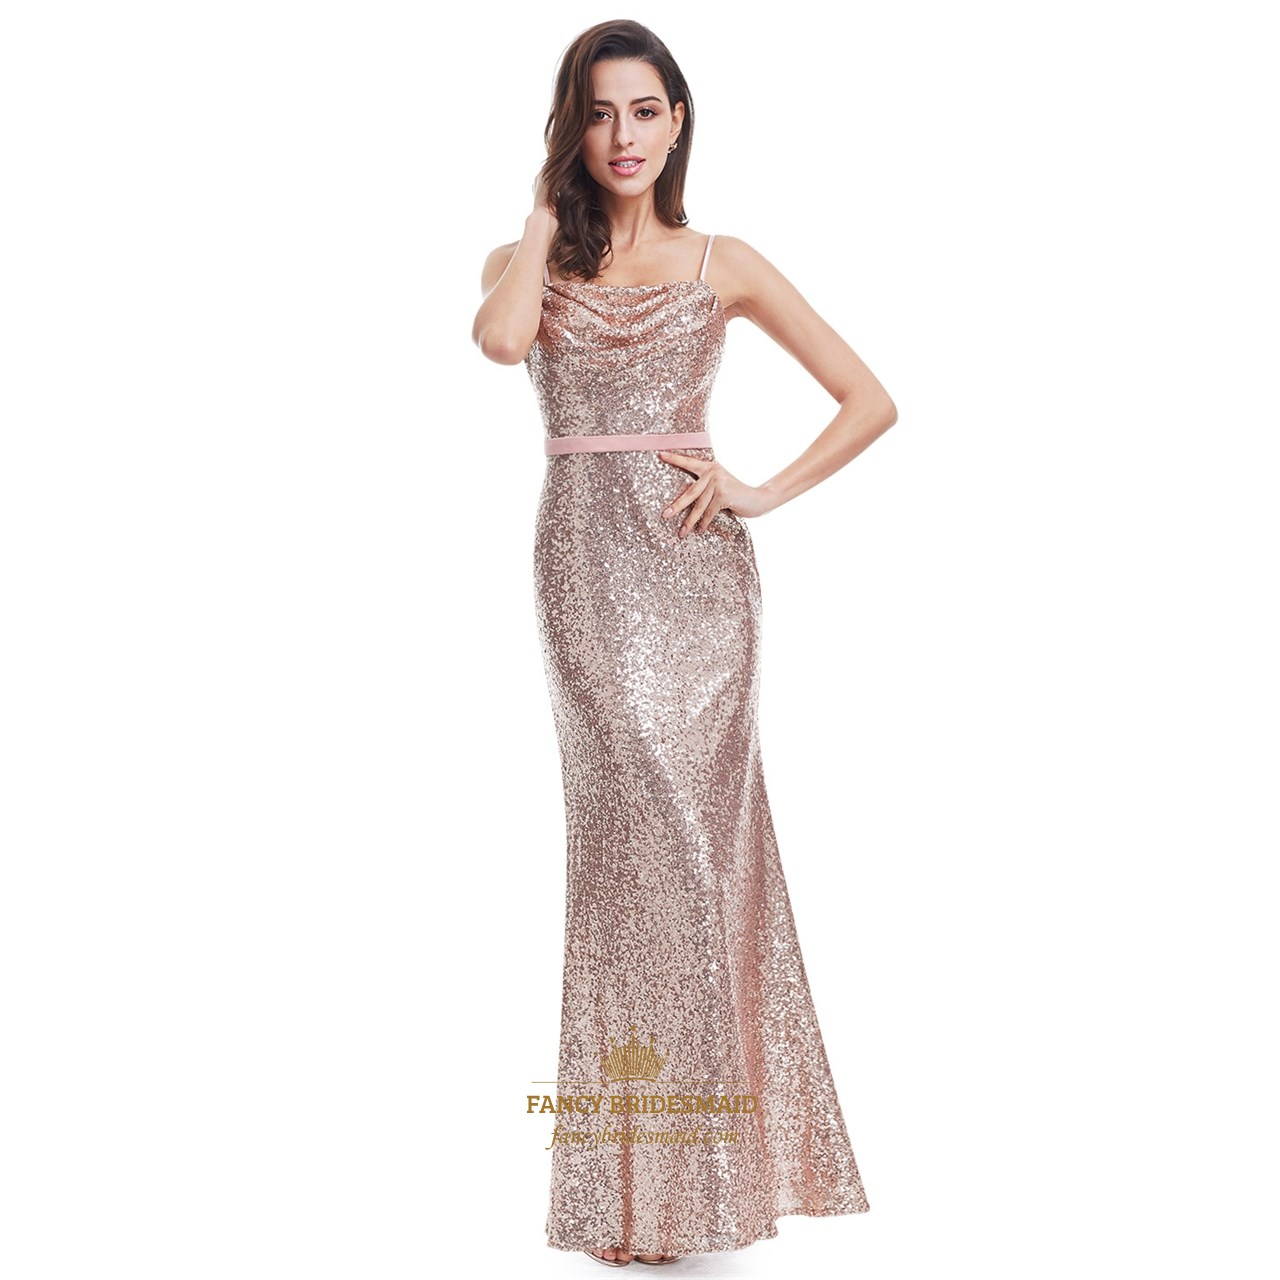 6b45a8b1271 Grey Backless Sleeveless Floor Length V-Neck Sequin Evening Dress SKU -FC845